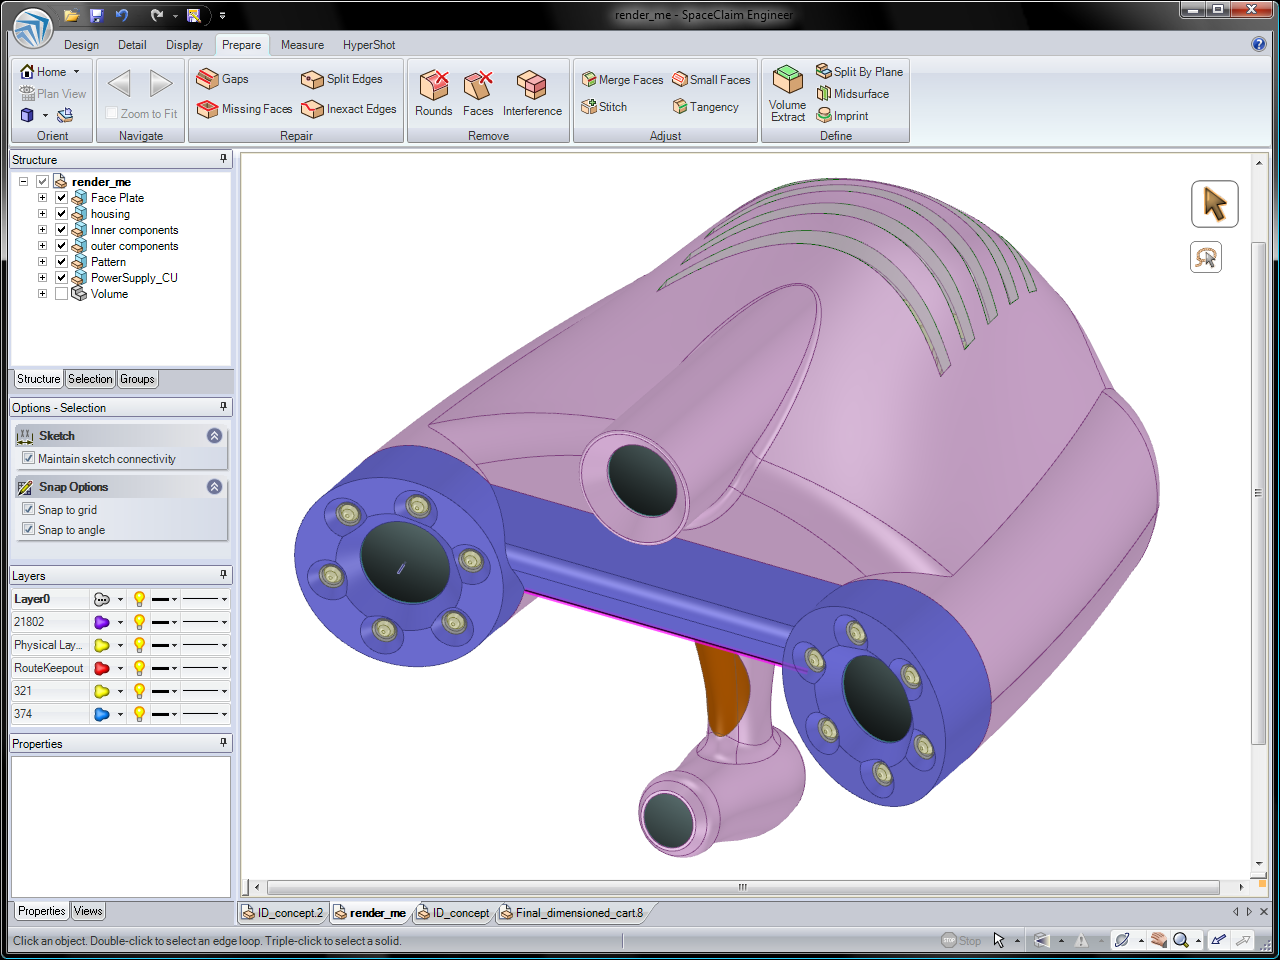 Spaceclaim ansys partnership conceptual and product 3d printer design software